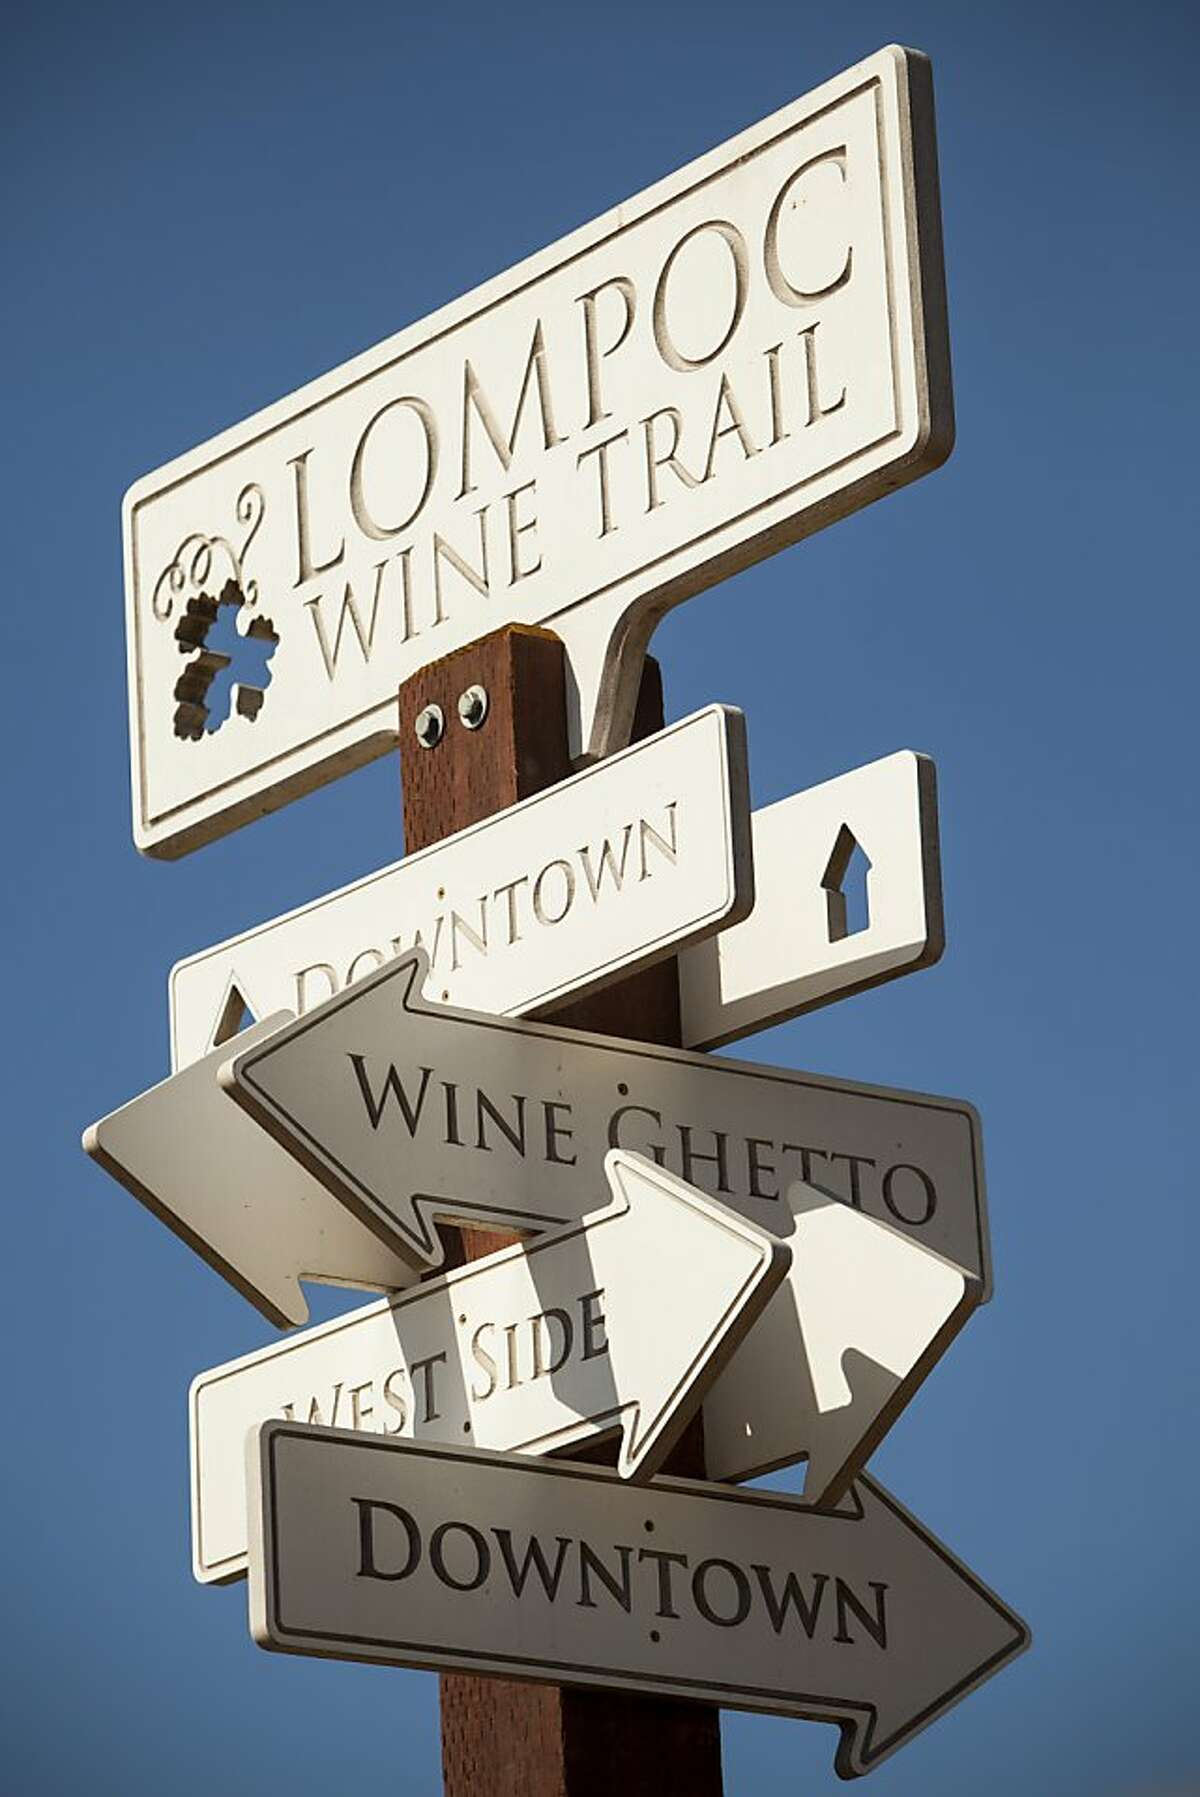 winemonth09_santabarbara Lompoc, CA - September 1, 2012 The city of Lompoc, located in Santa Barbara County is becoming known for the Lompoc Wine Ghetto, a unique two-block industrial complex which has been almost completely taken over by the wine industry. Nancy Pastor/SPECIAL TO THE CHRONICLE